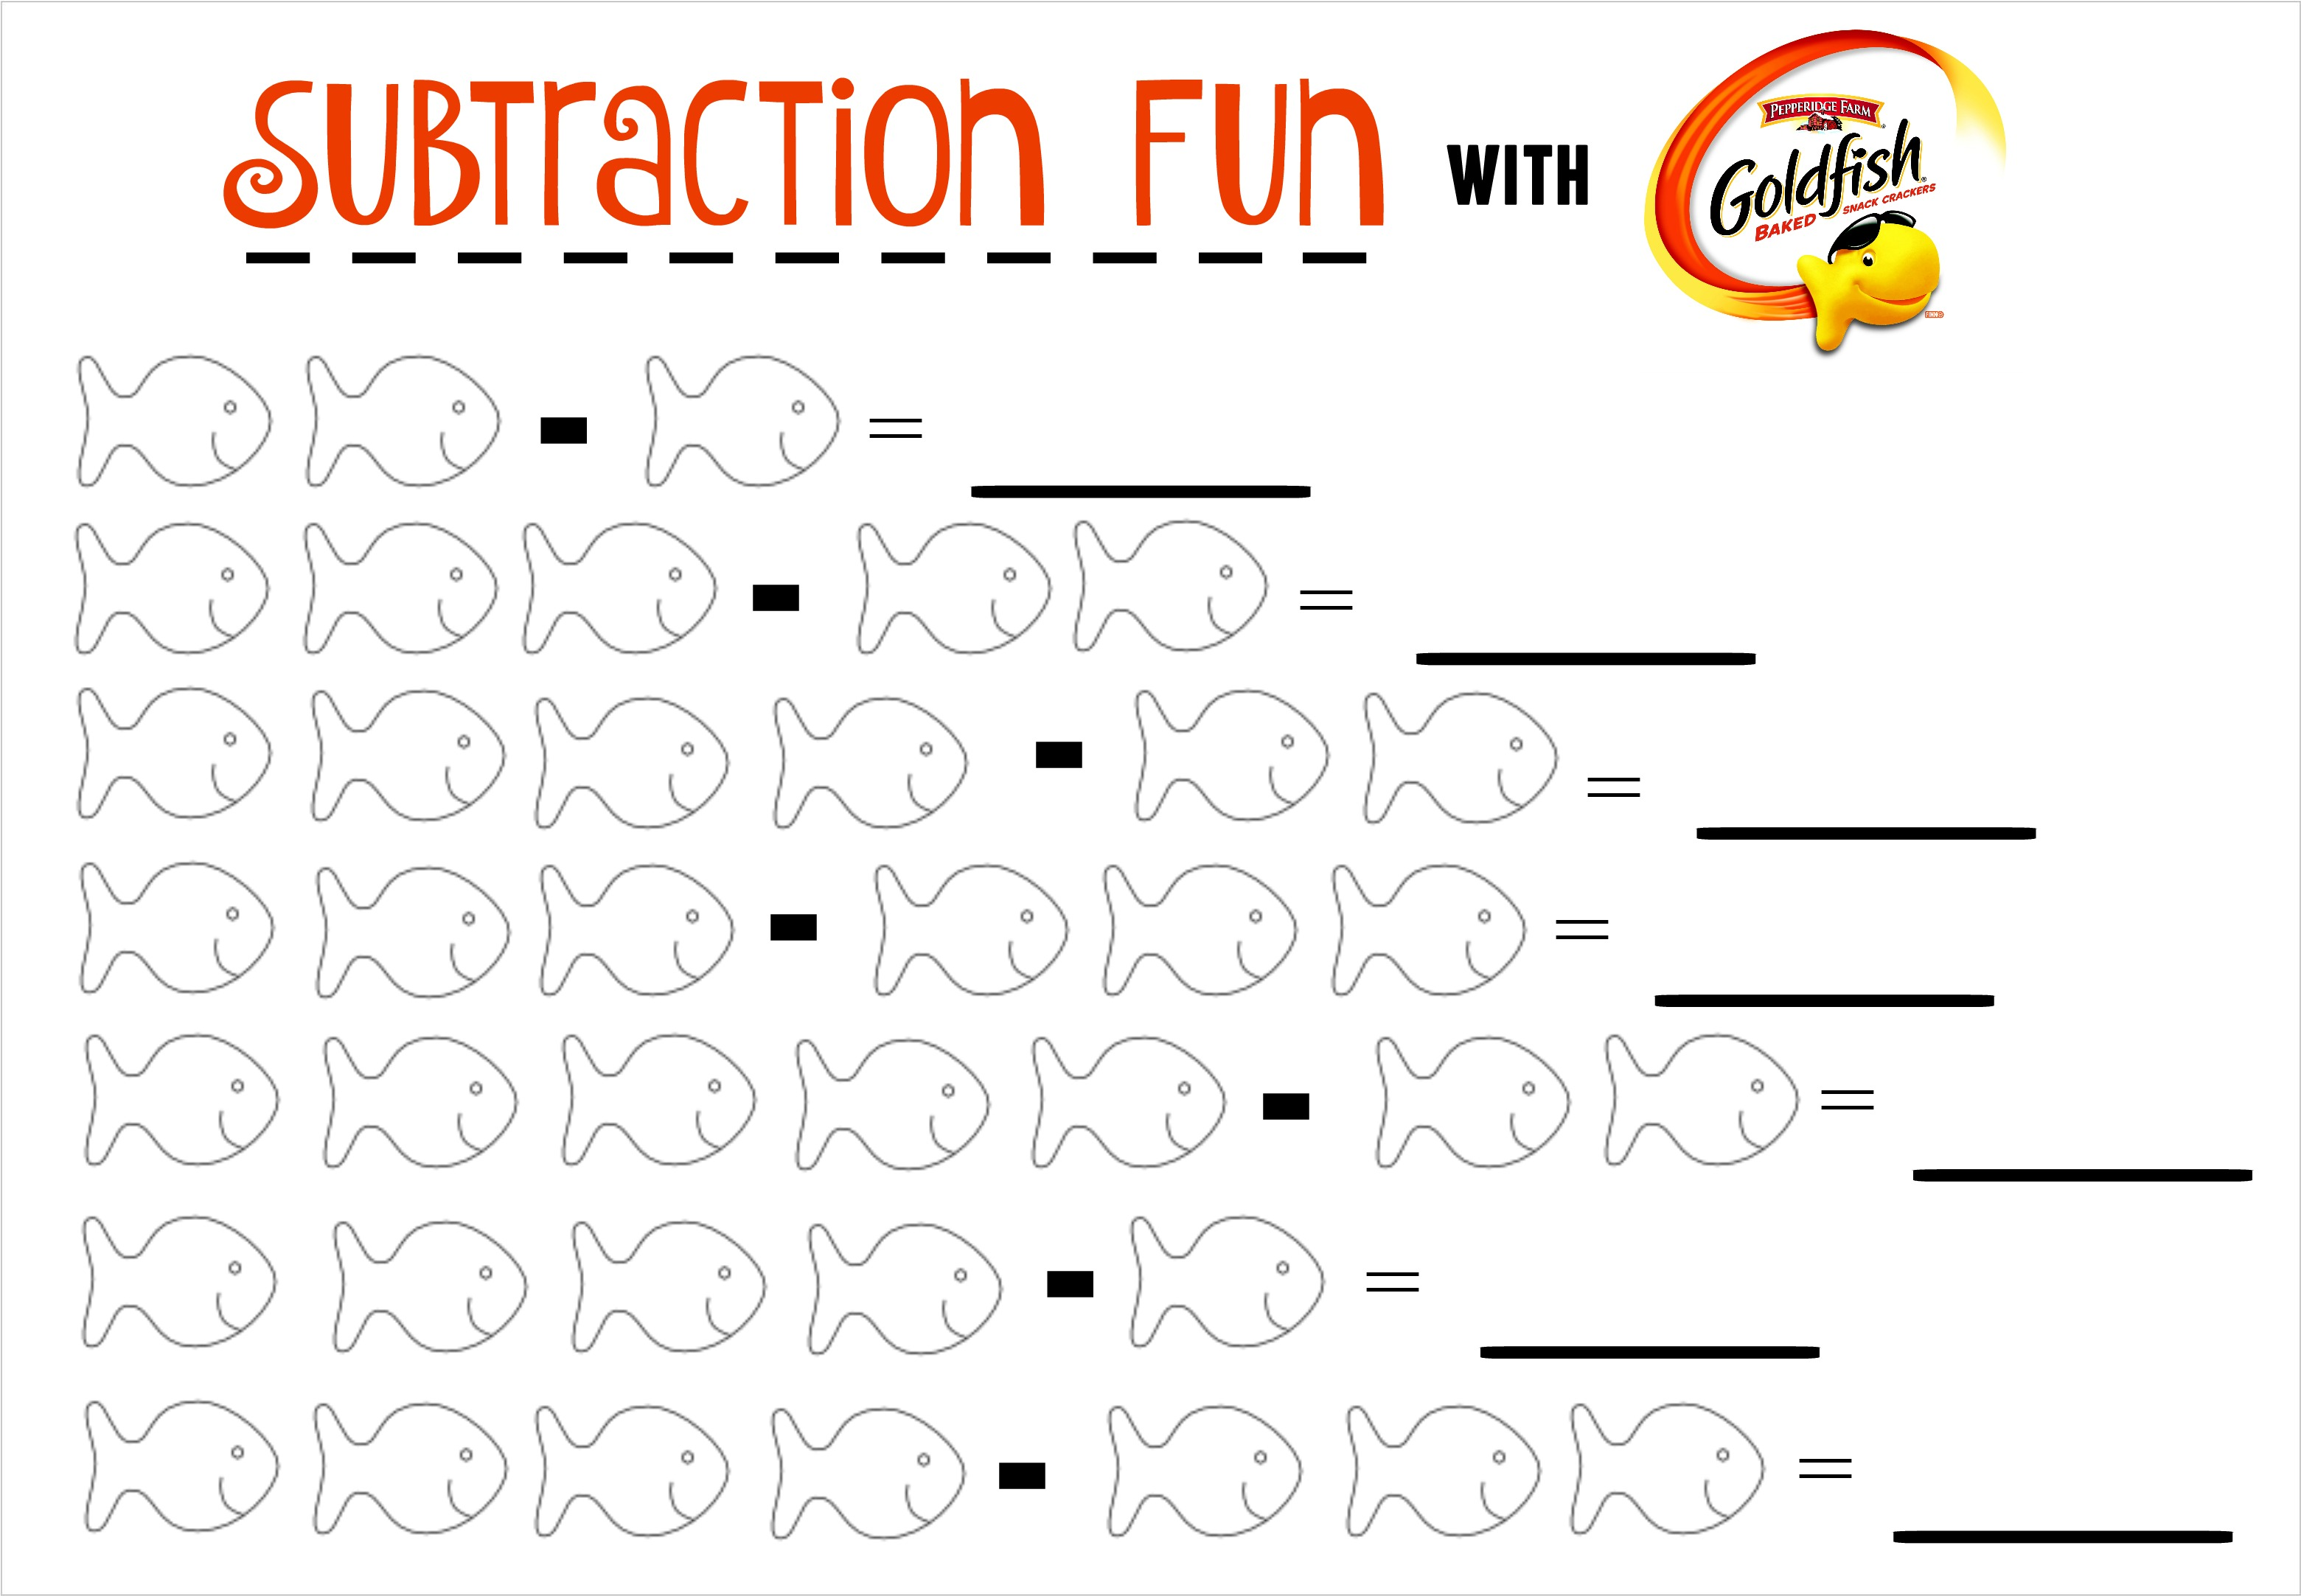 Subtraction Fun With Goldfish